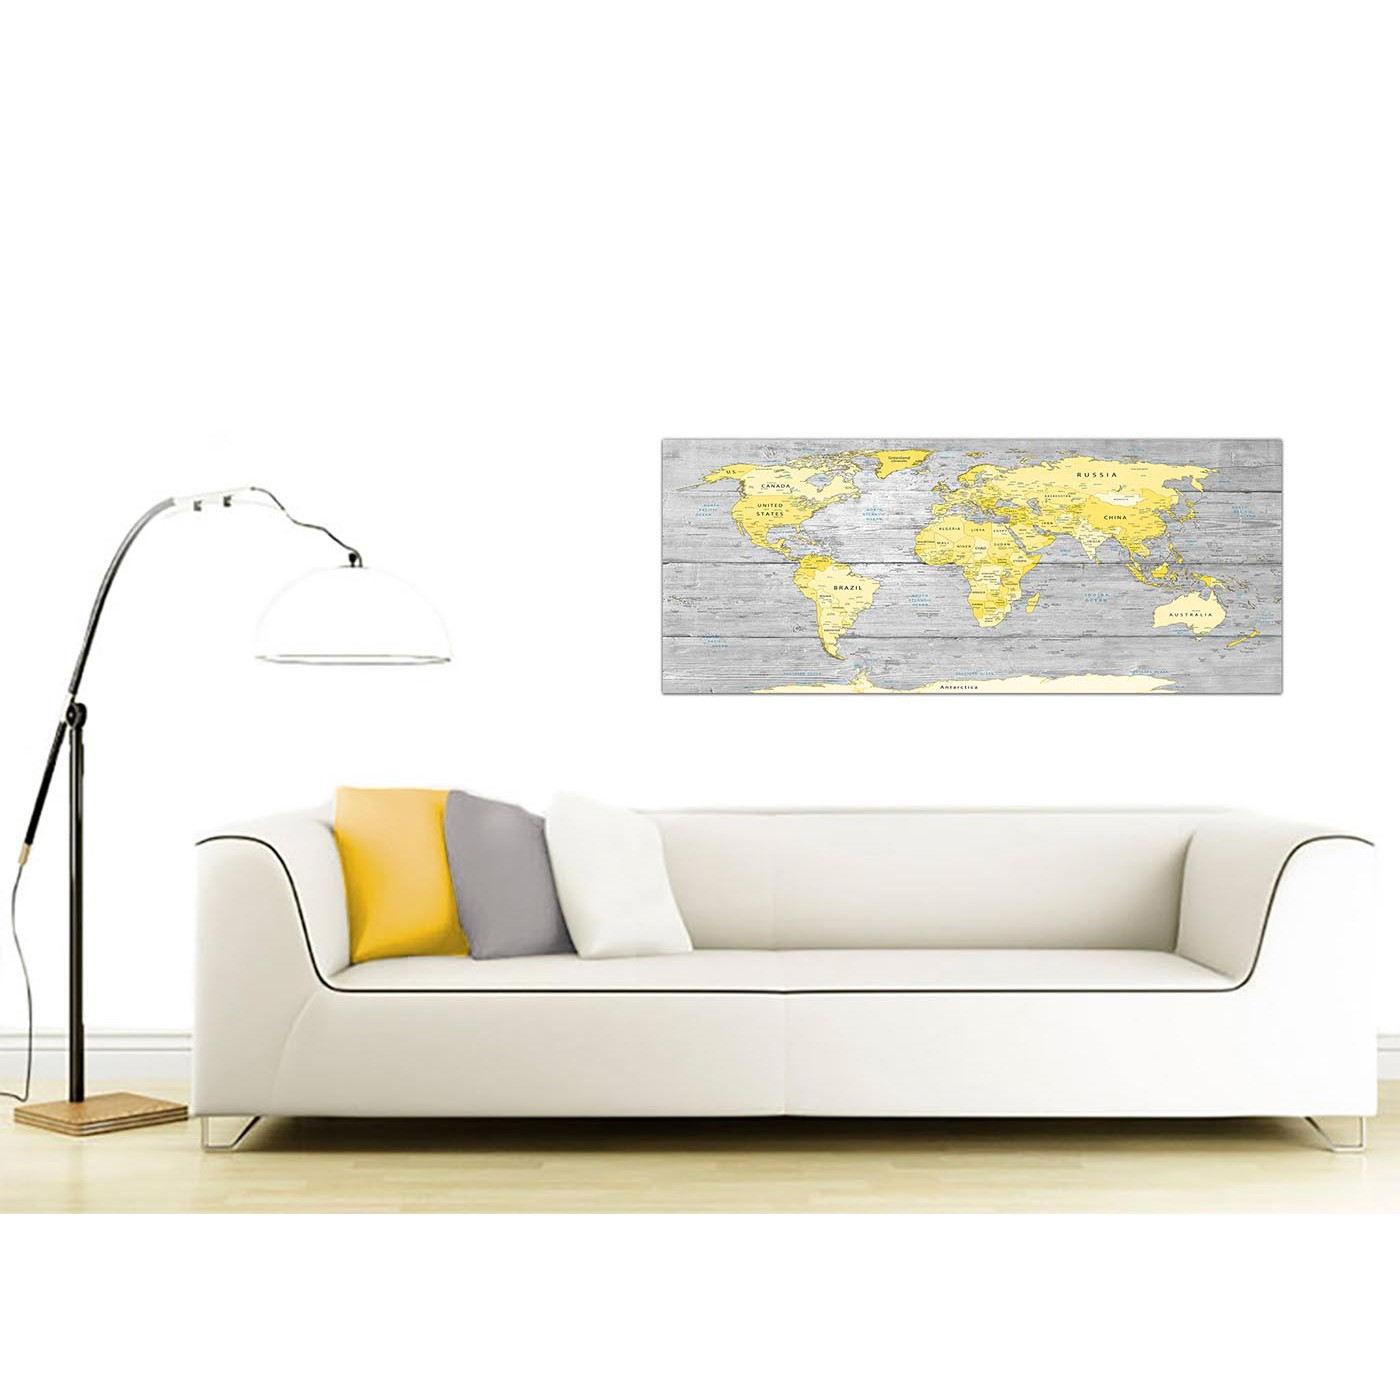 Large yellow grey map of world atlas canvas wall art print maps display gallery item 3 contemporary yellow grey large yellow grey map of world atlas canvas wall art print maps canvas display gallery item 4 gumiabroncs Choice Image